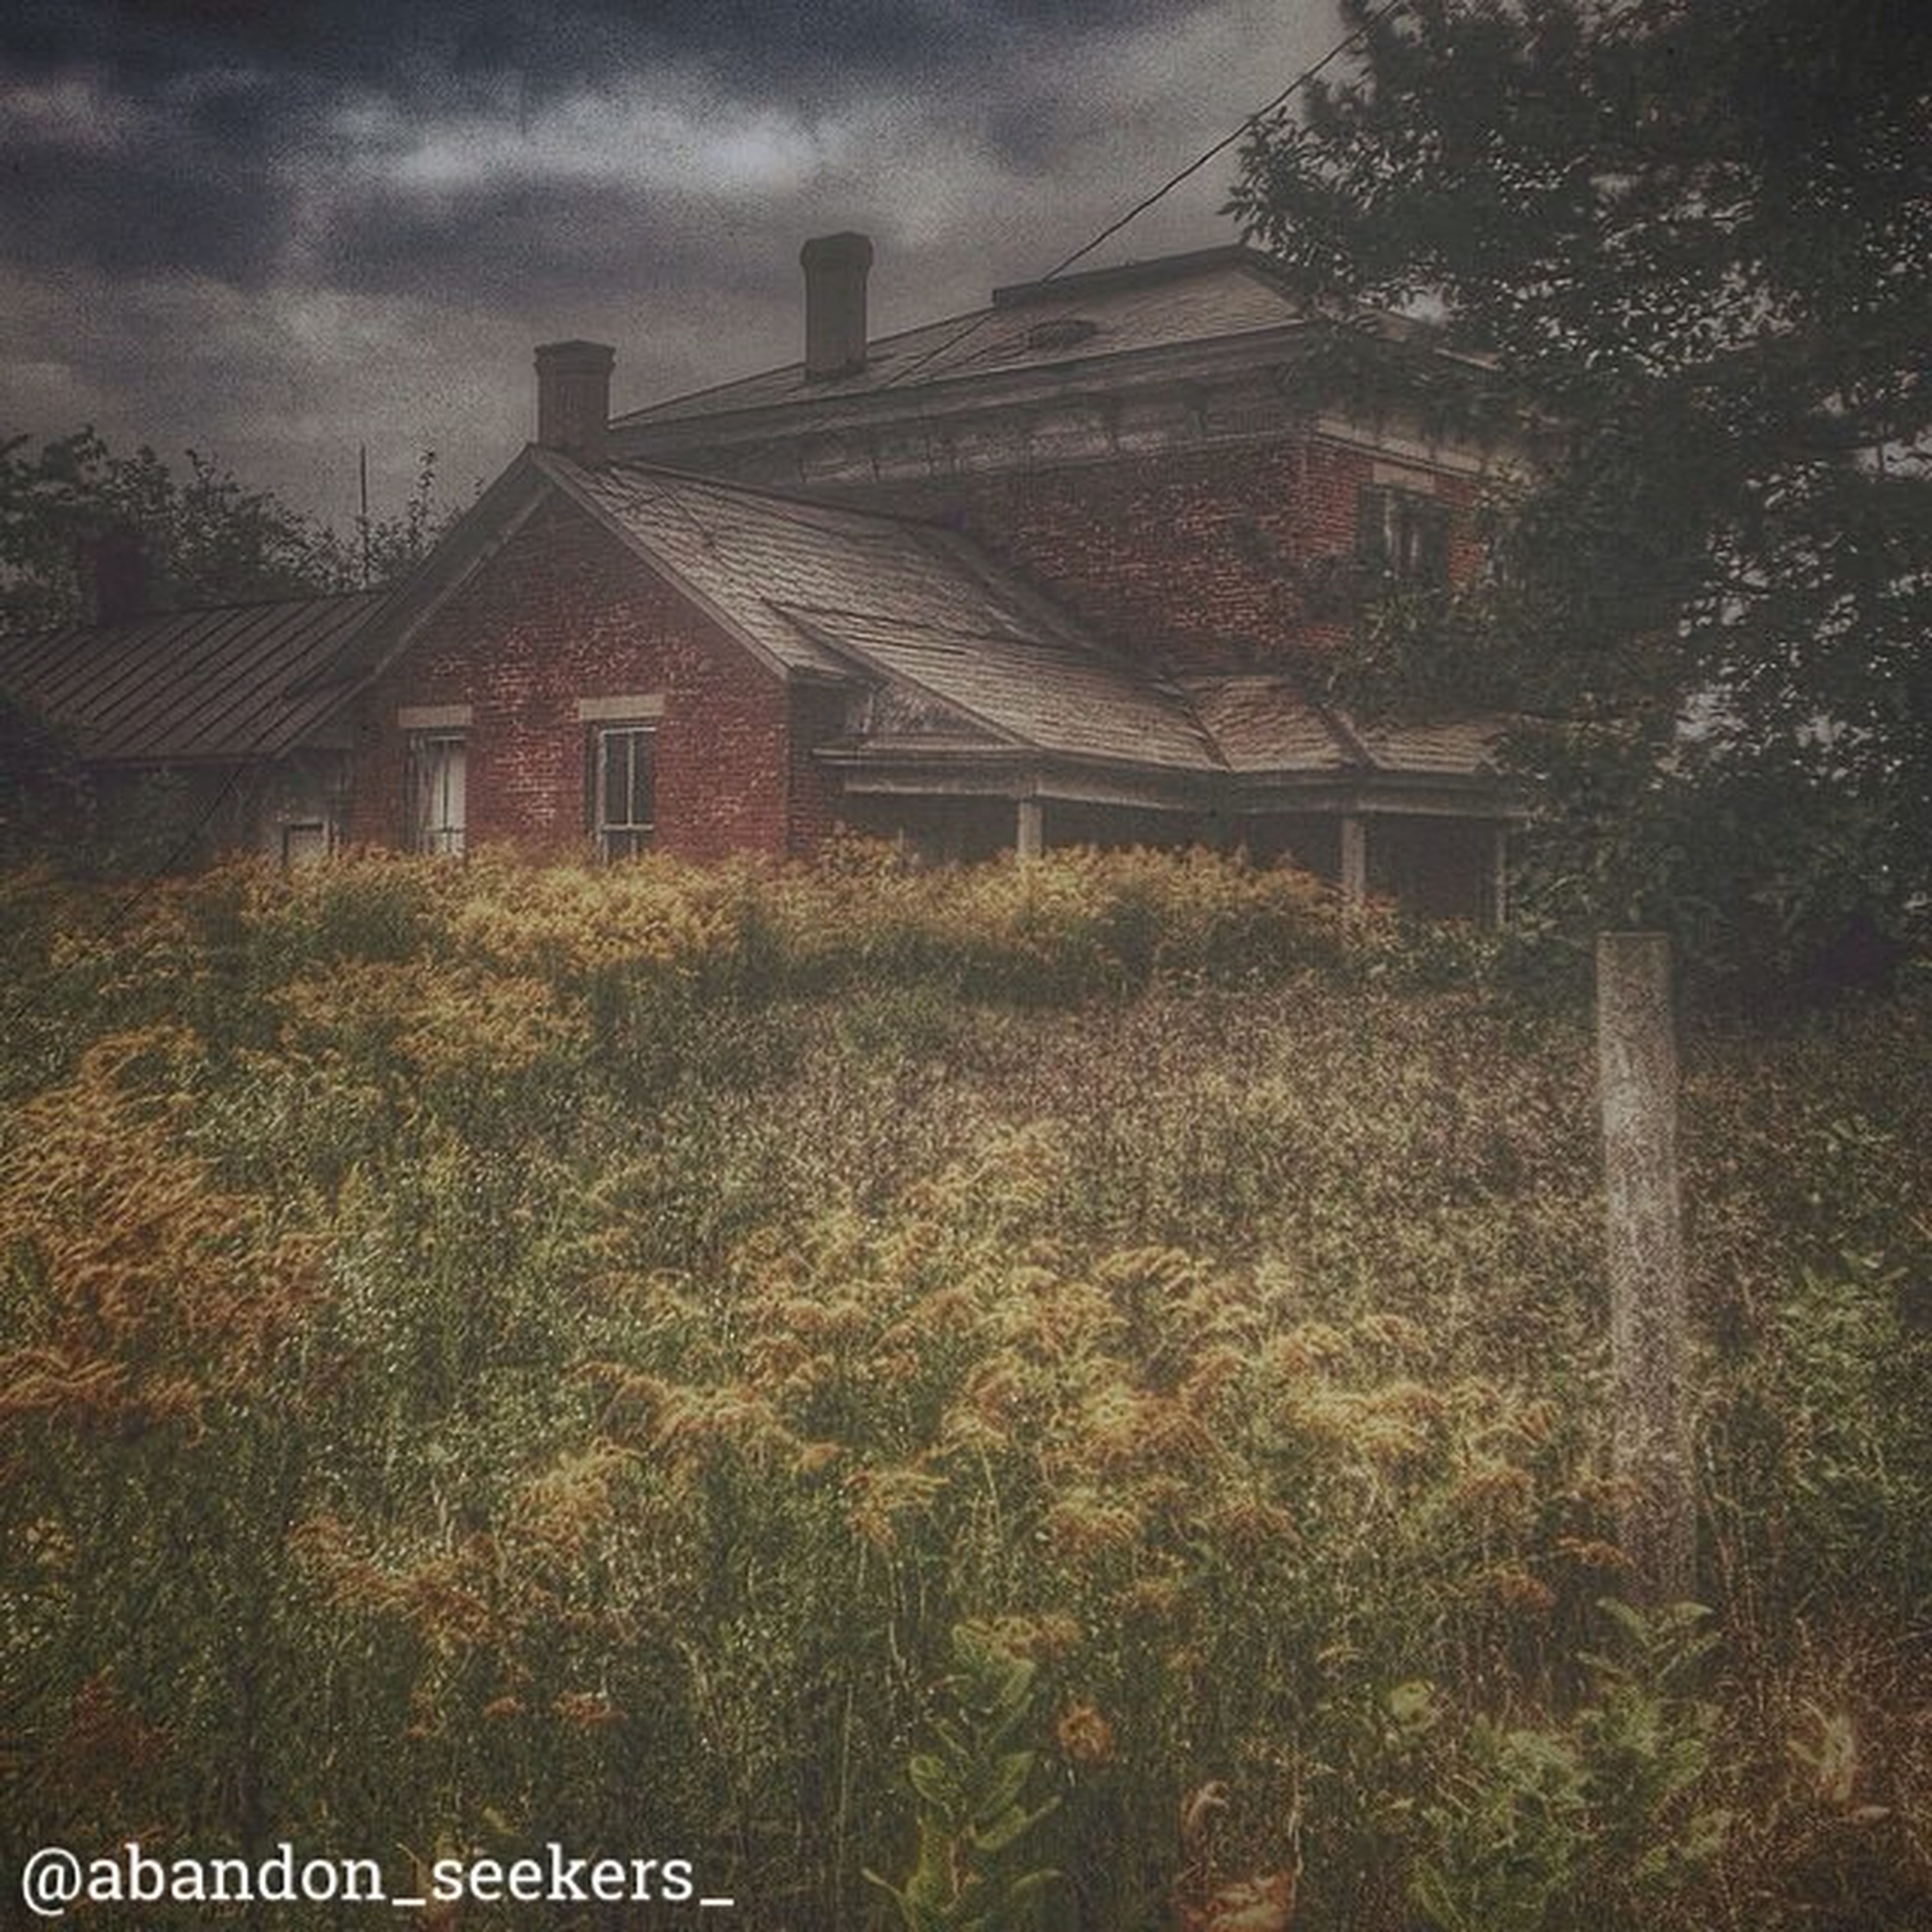 architecture, building exterior, built structure, sky, house, grass, field, cloud - sky, growth, residential structure, plant, tree, residential building, outdoors, day, nature, no people, rural scene, cloudy, overcast